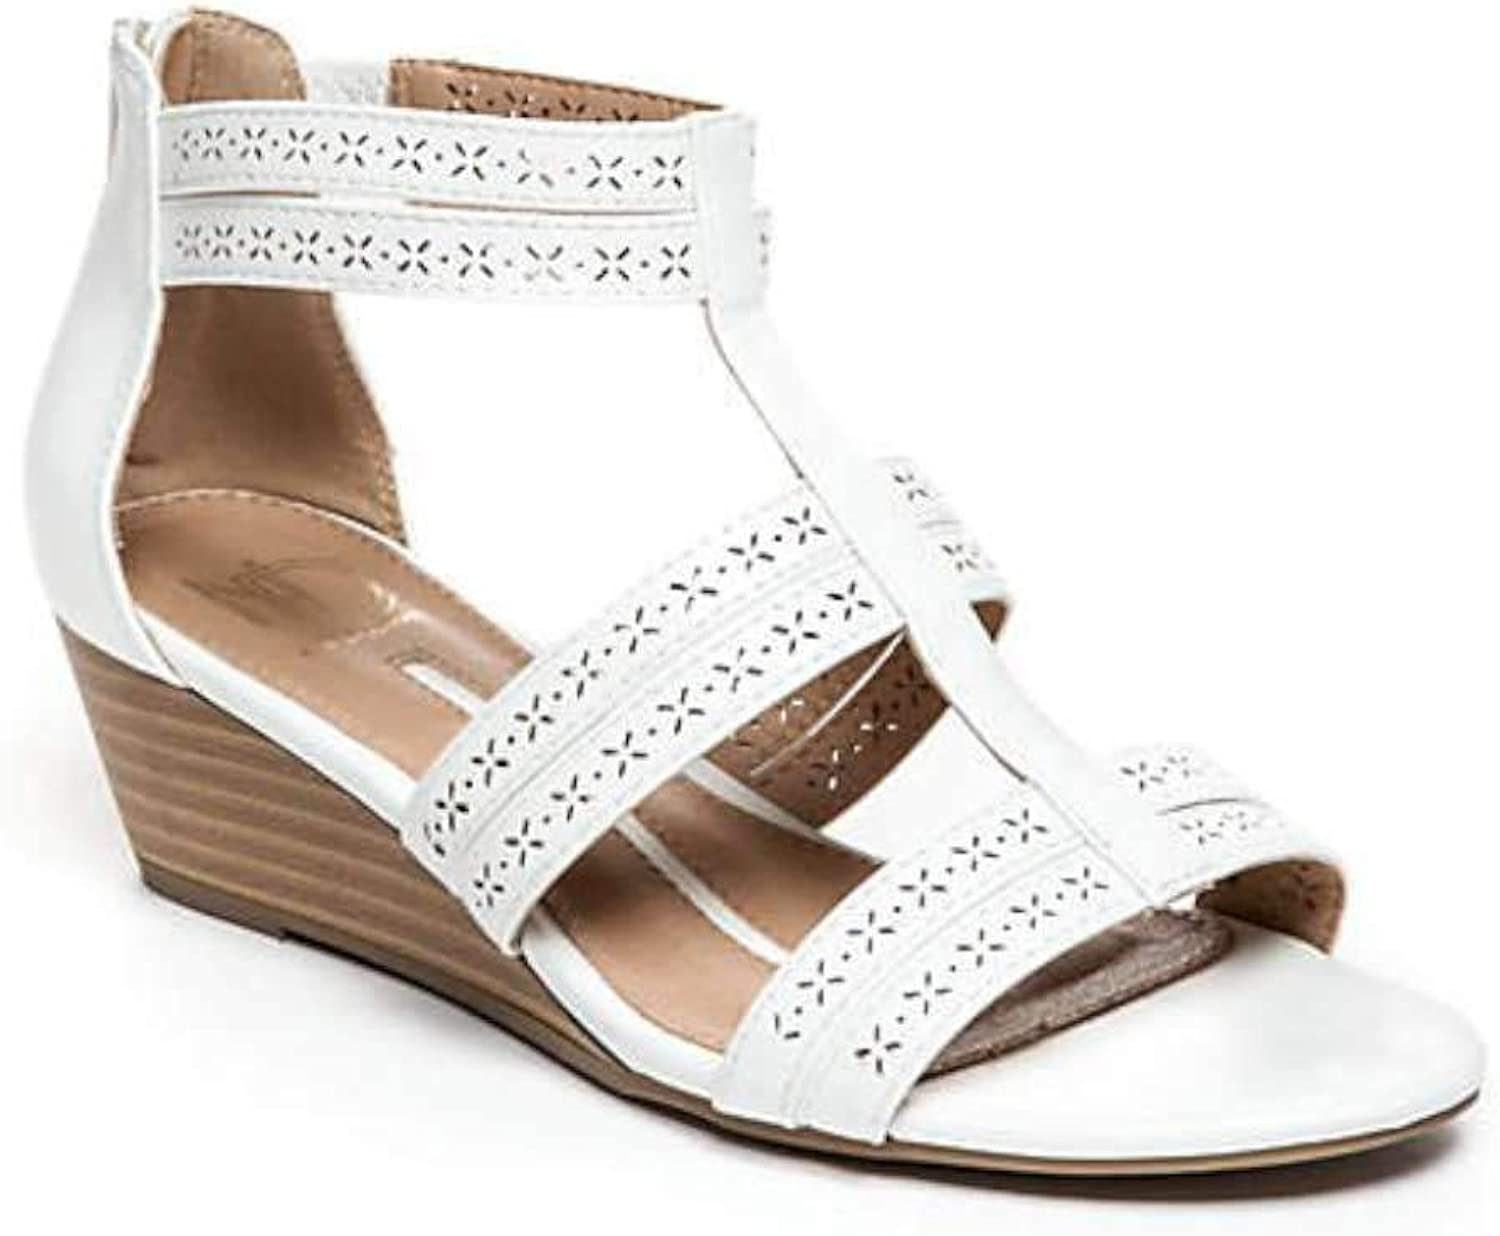 New Directions Womens Vsuw110380 Open Toe Casual Strappy Sandals